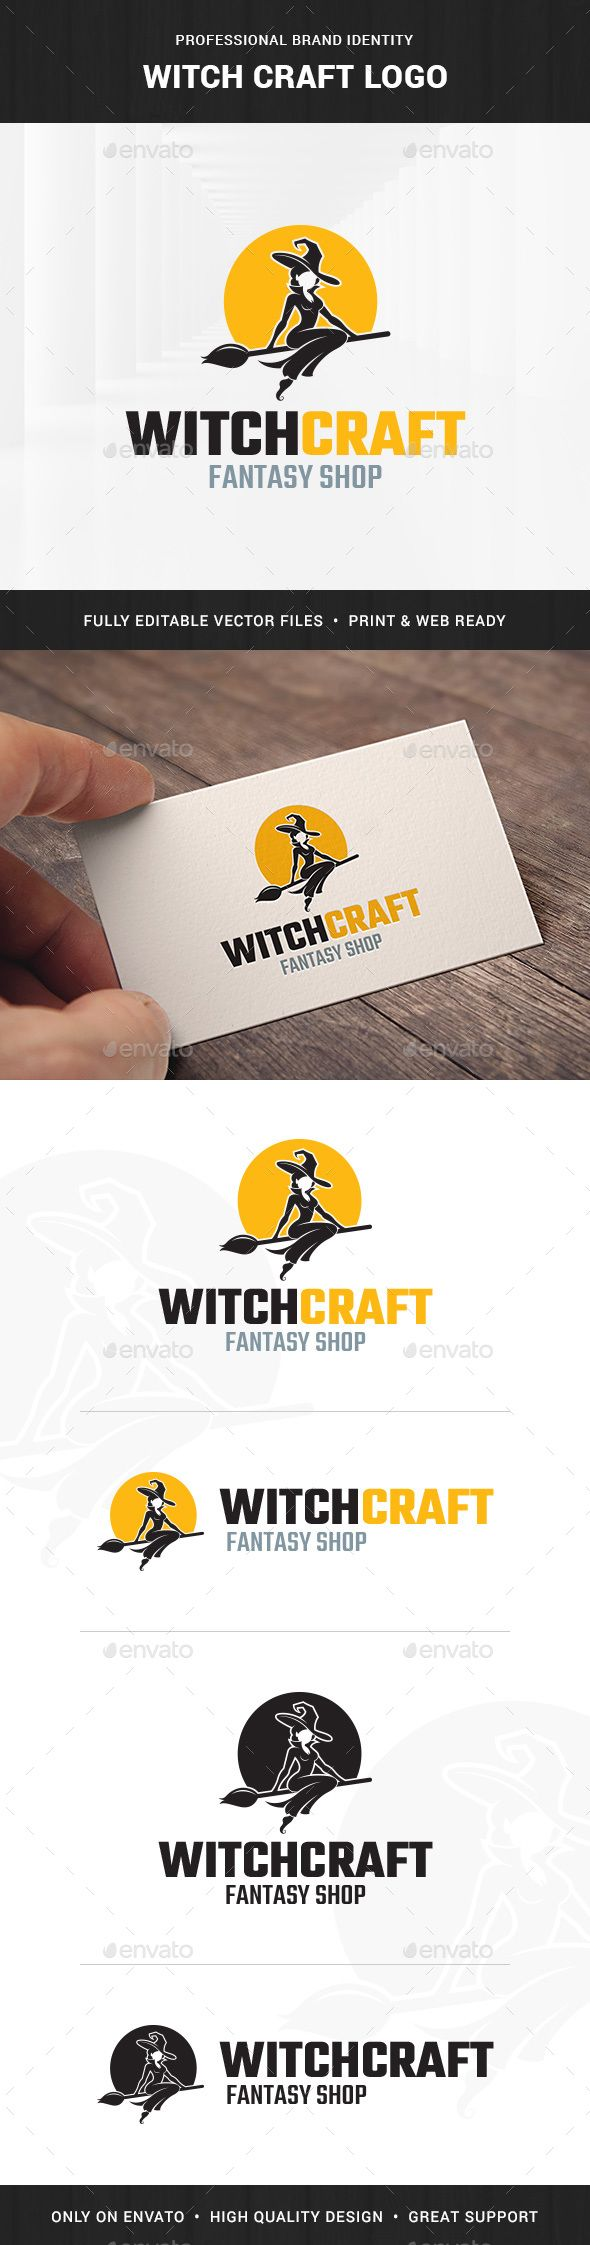 Witch Craft Logo Template PSD, Transparent PNG, Vector EPS, AI Illustrator. Download here: http://graphicriver.net/item/witch-craft-logo-template/16660507?ref=ksioks